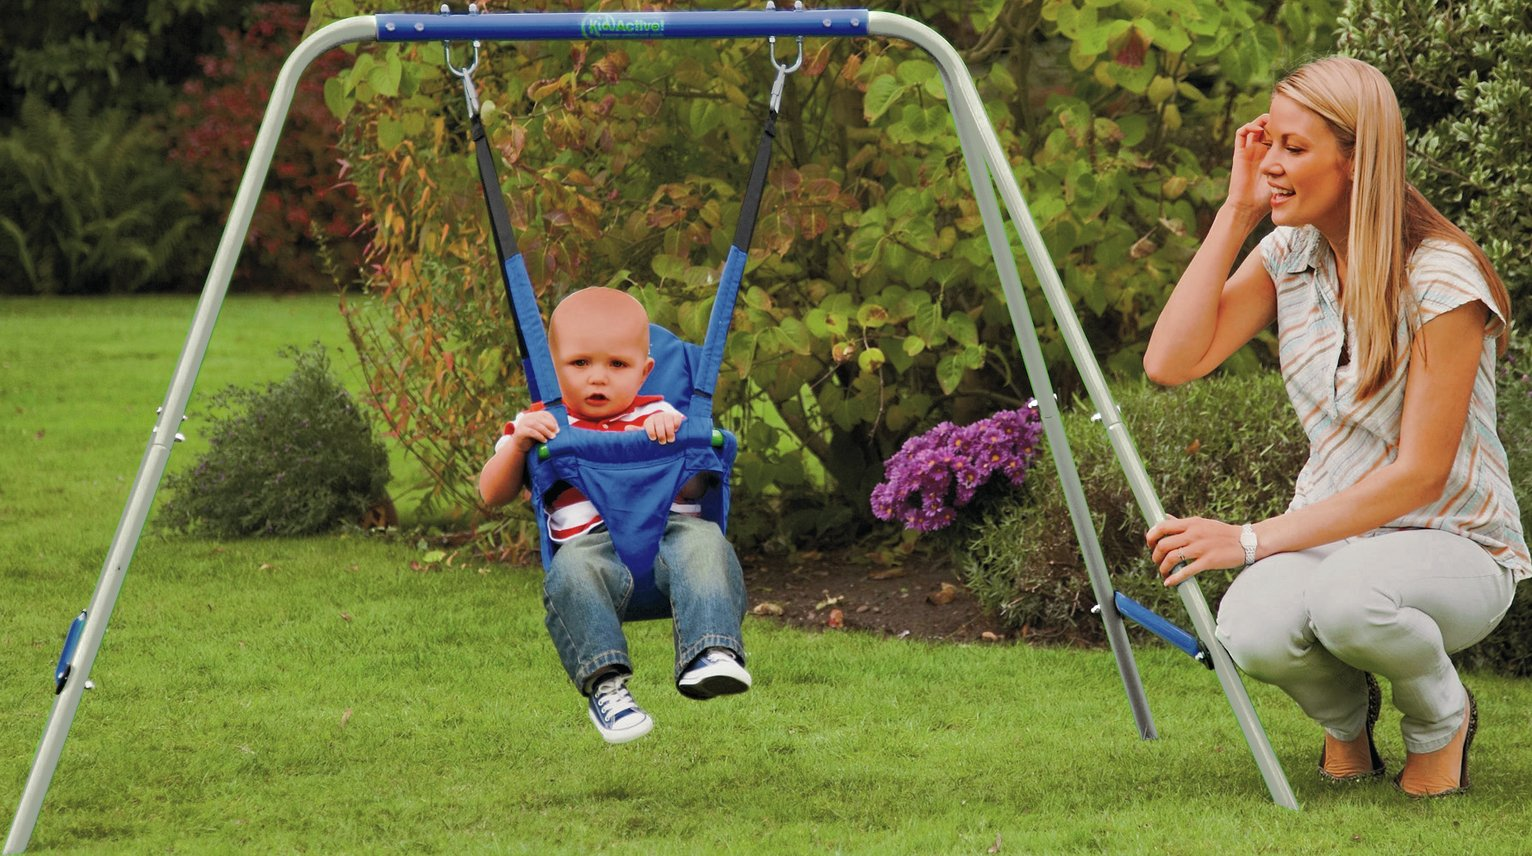 Chad Valley - Kids Active 2-in-1 Swing